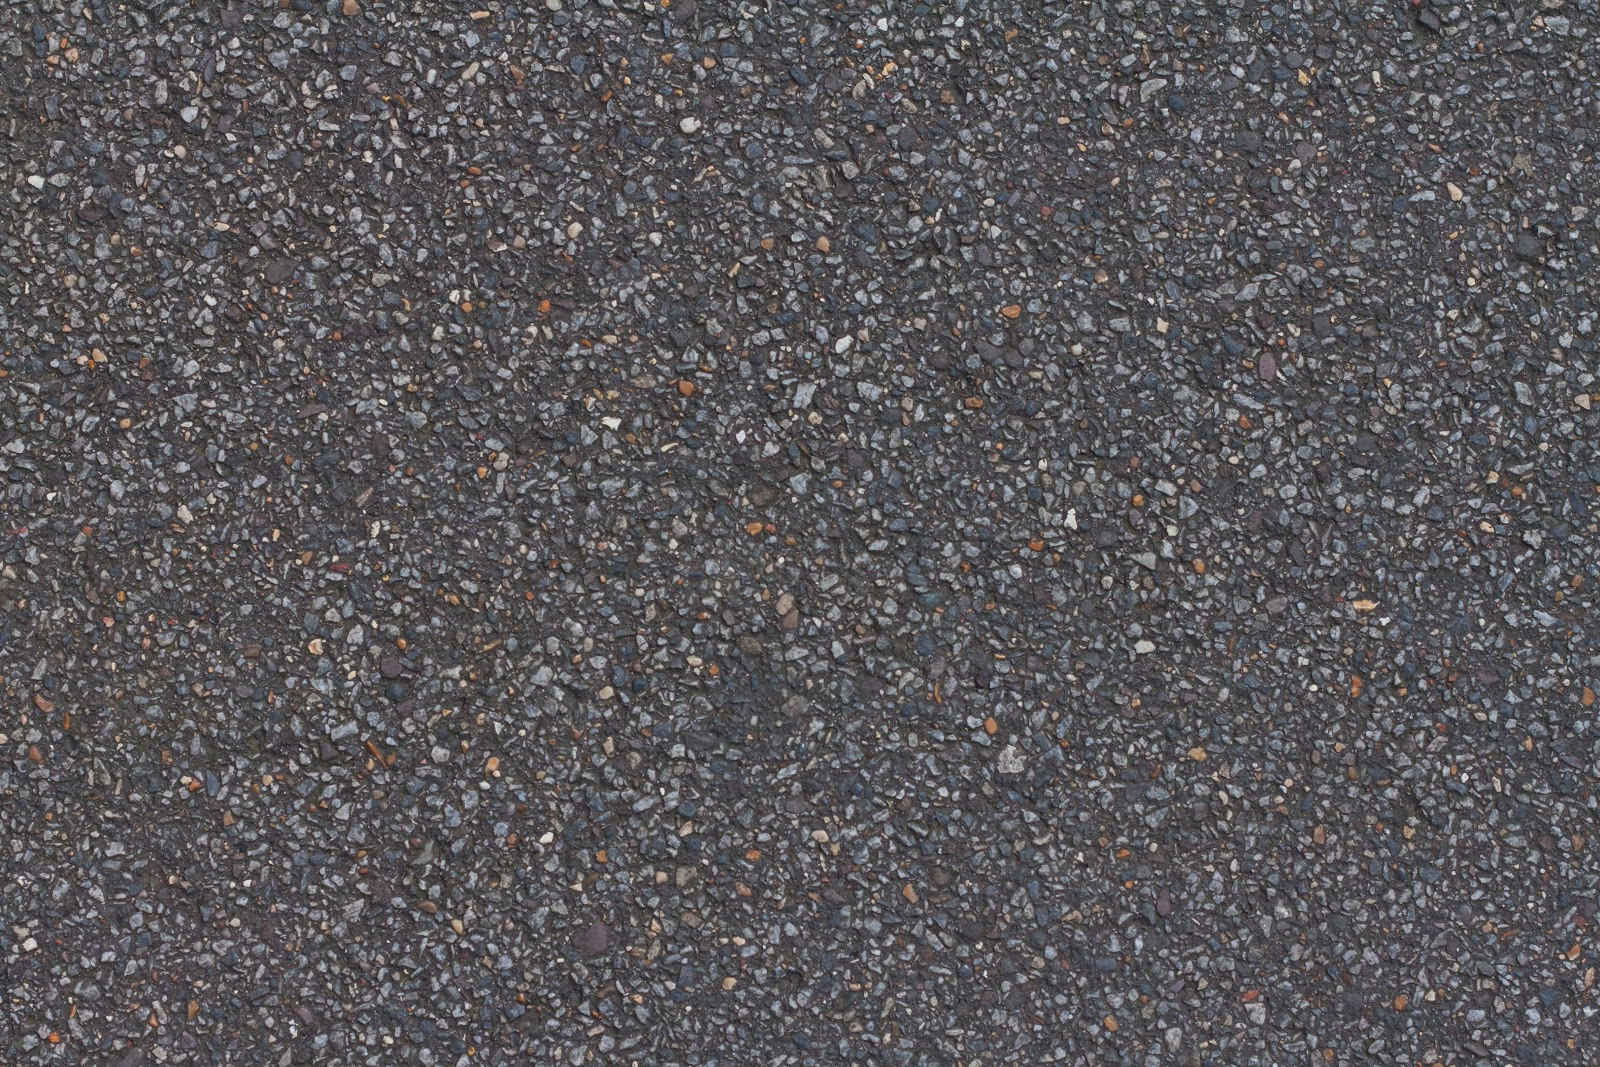 Detailed road surface texture 4752x3168